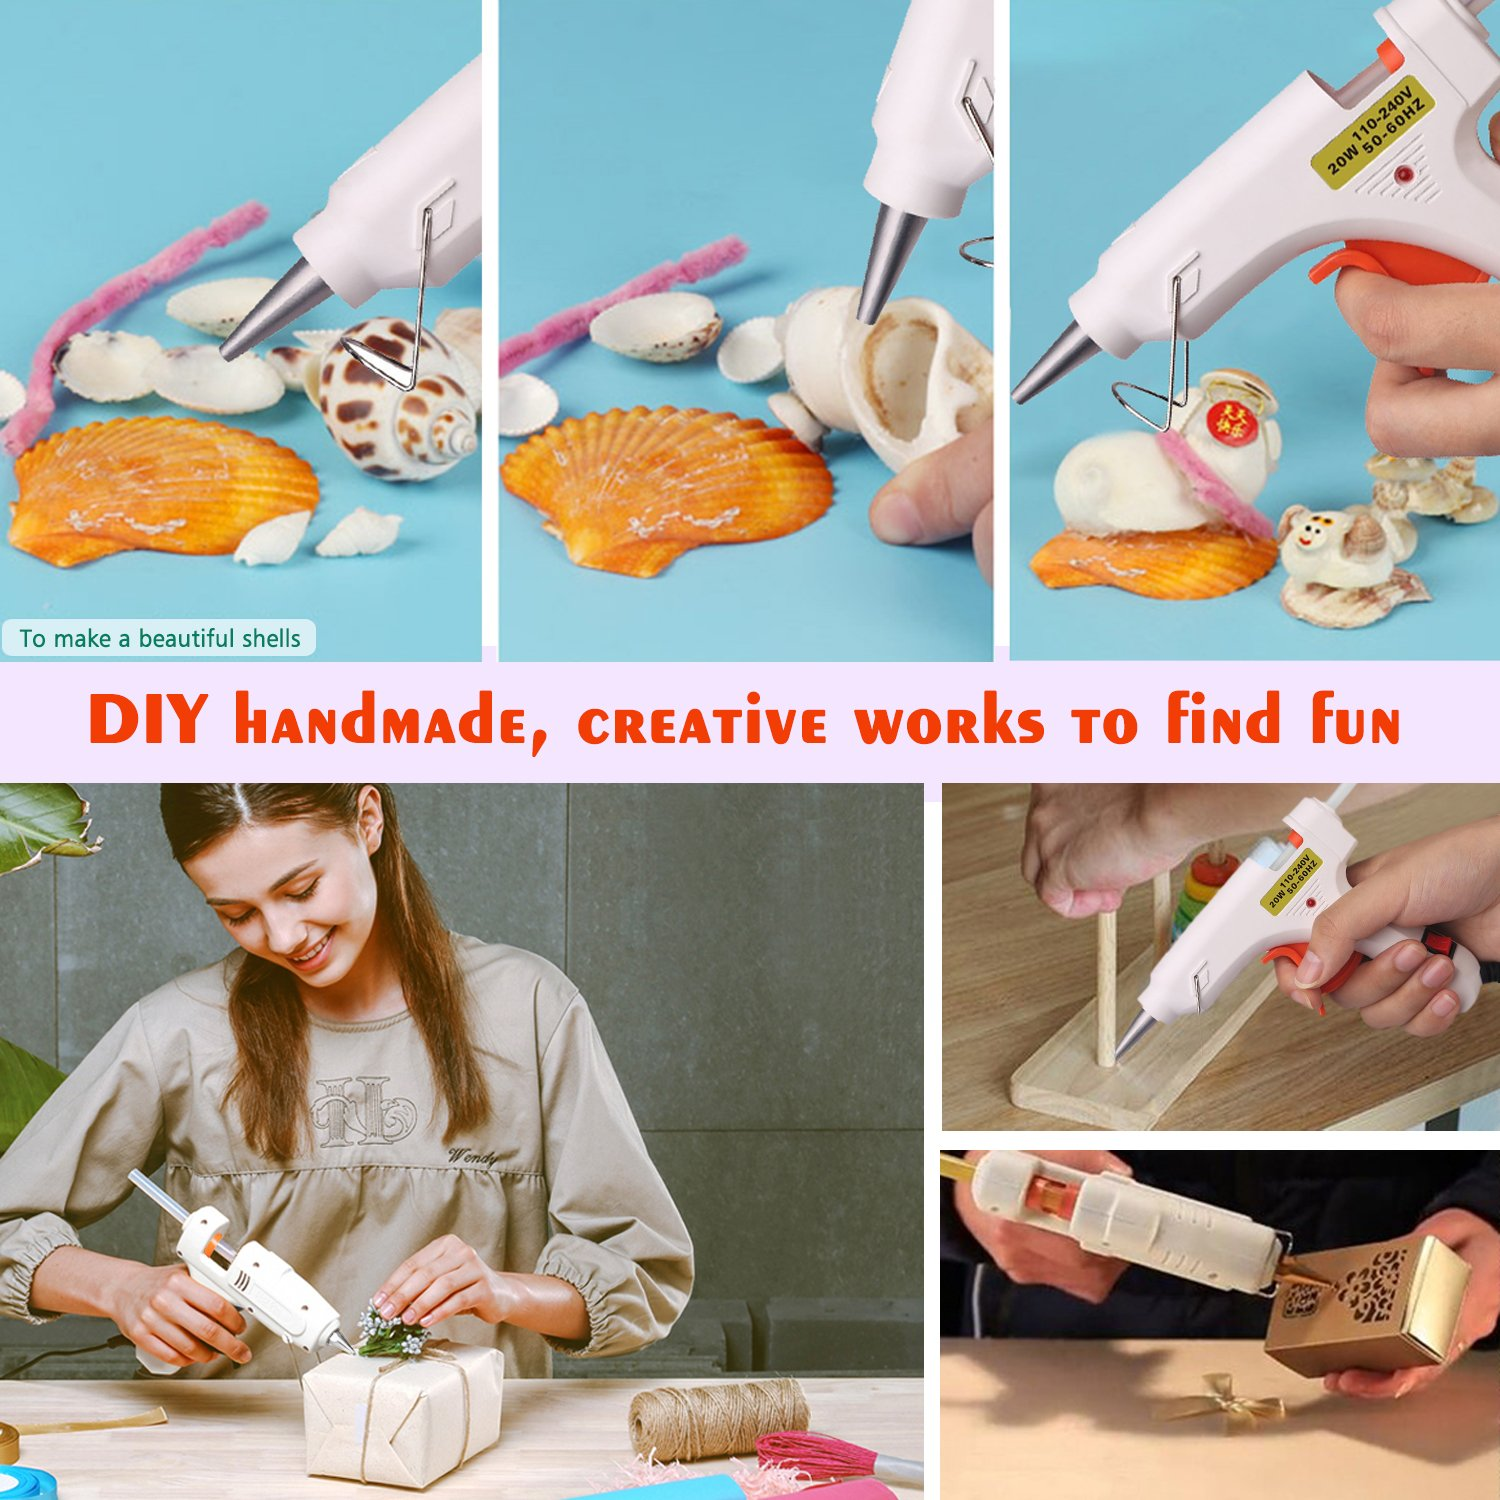 Hot Melt Glue gun with 30 pcs free glue sticks, High temperature melting glue gun with safety stand and built in fuse for over heat protection for small craft projects, home, office and quick repair by FLY5D (Image #4)